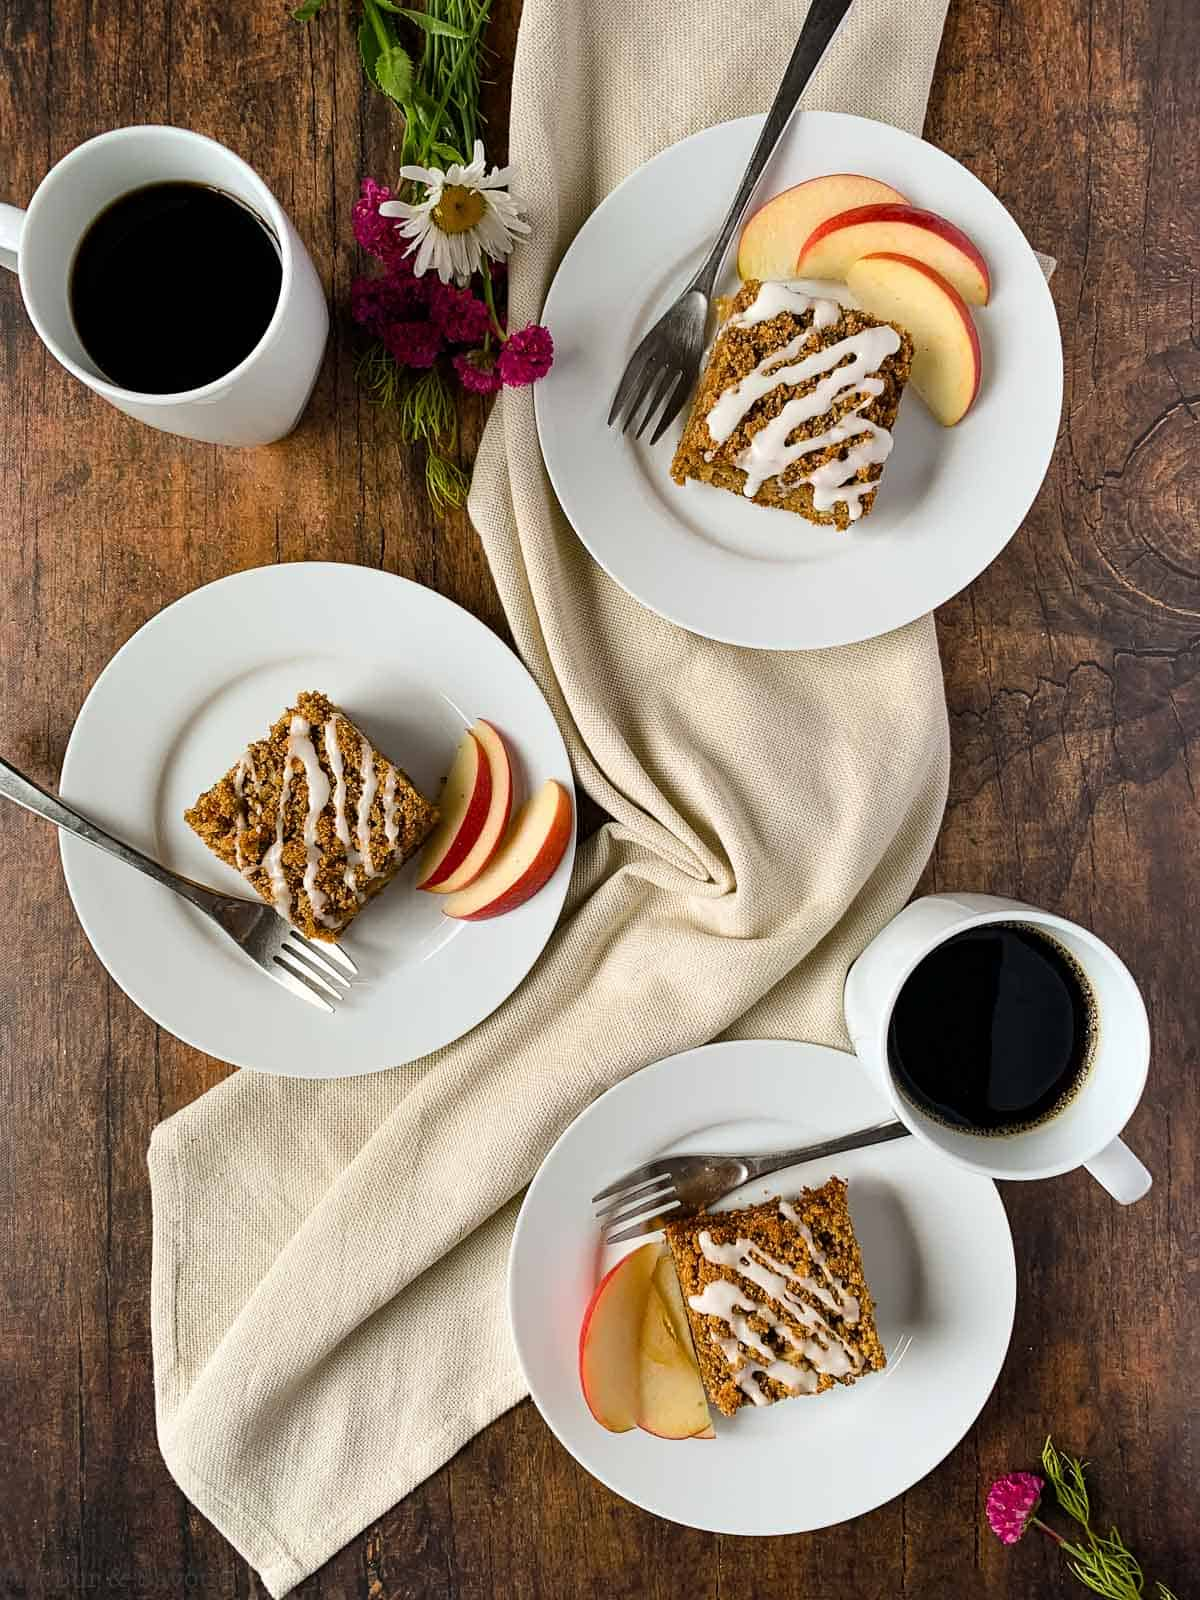 Overhead view of 3 plates of gluten-free apple cinnamon coffee cake with coffee